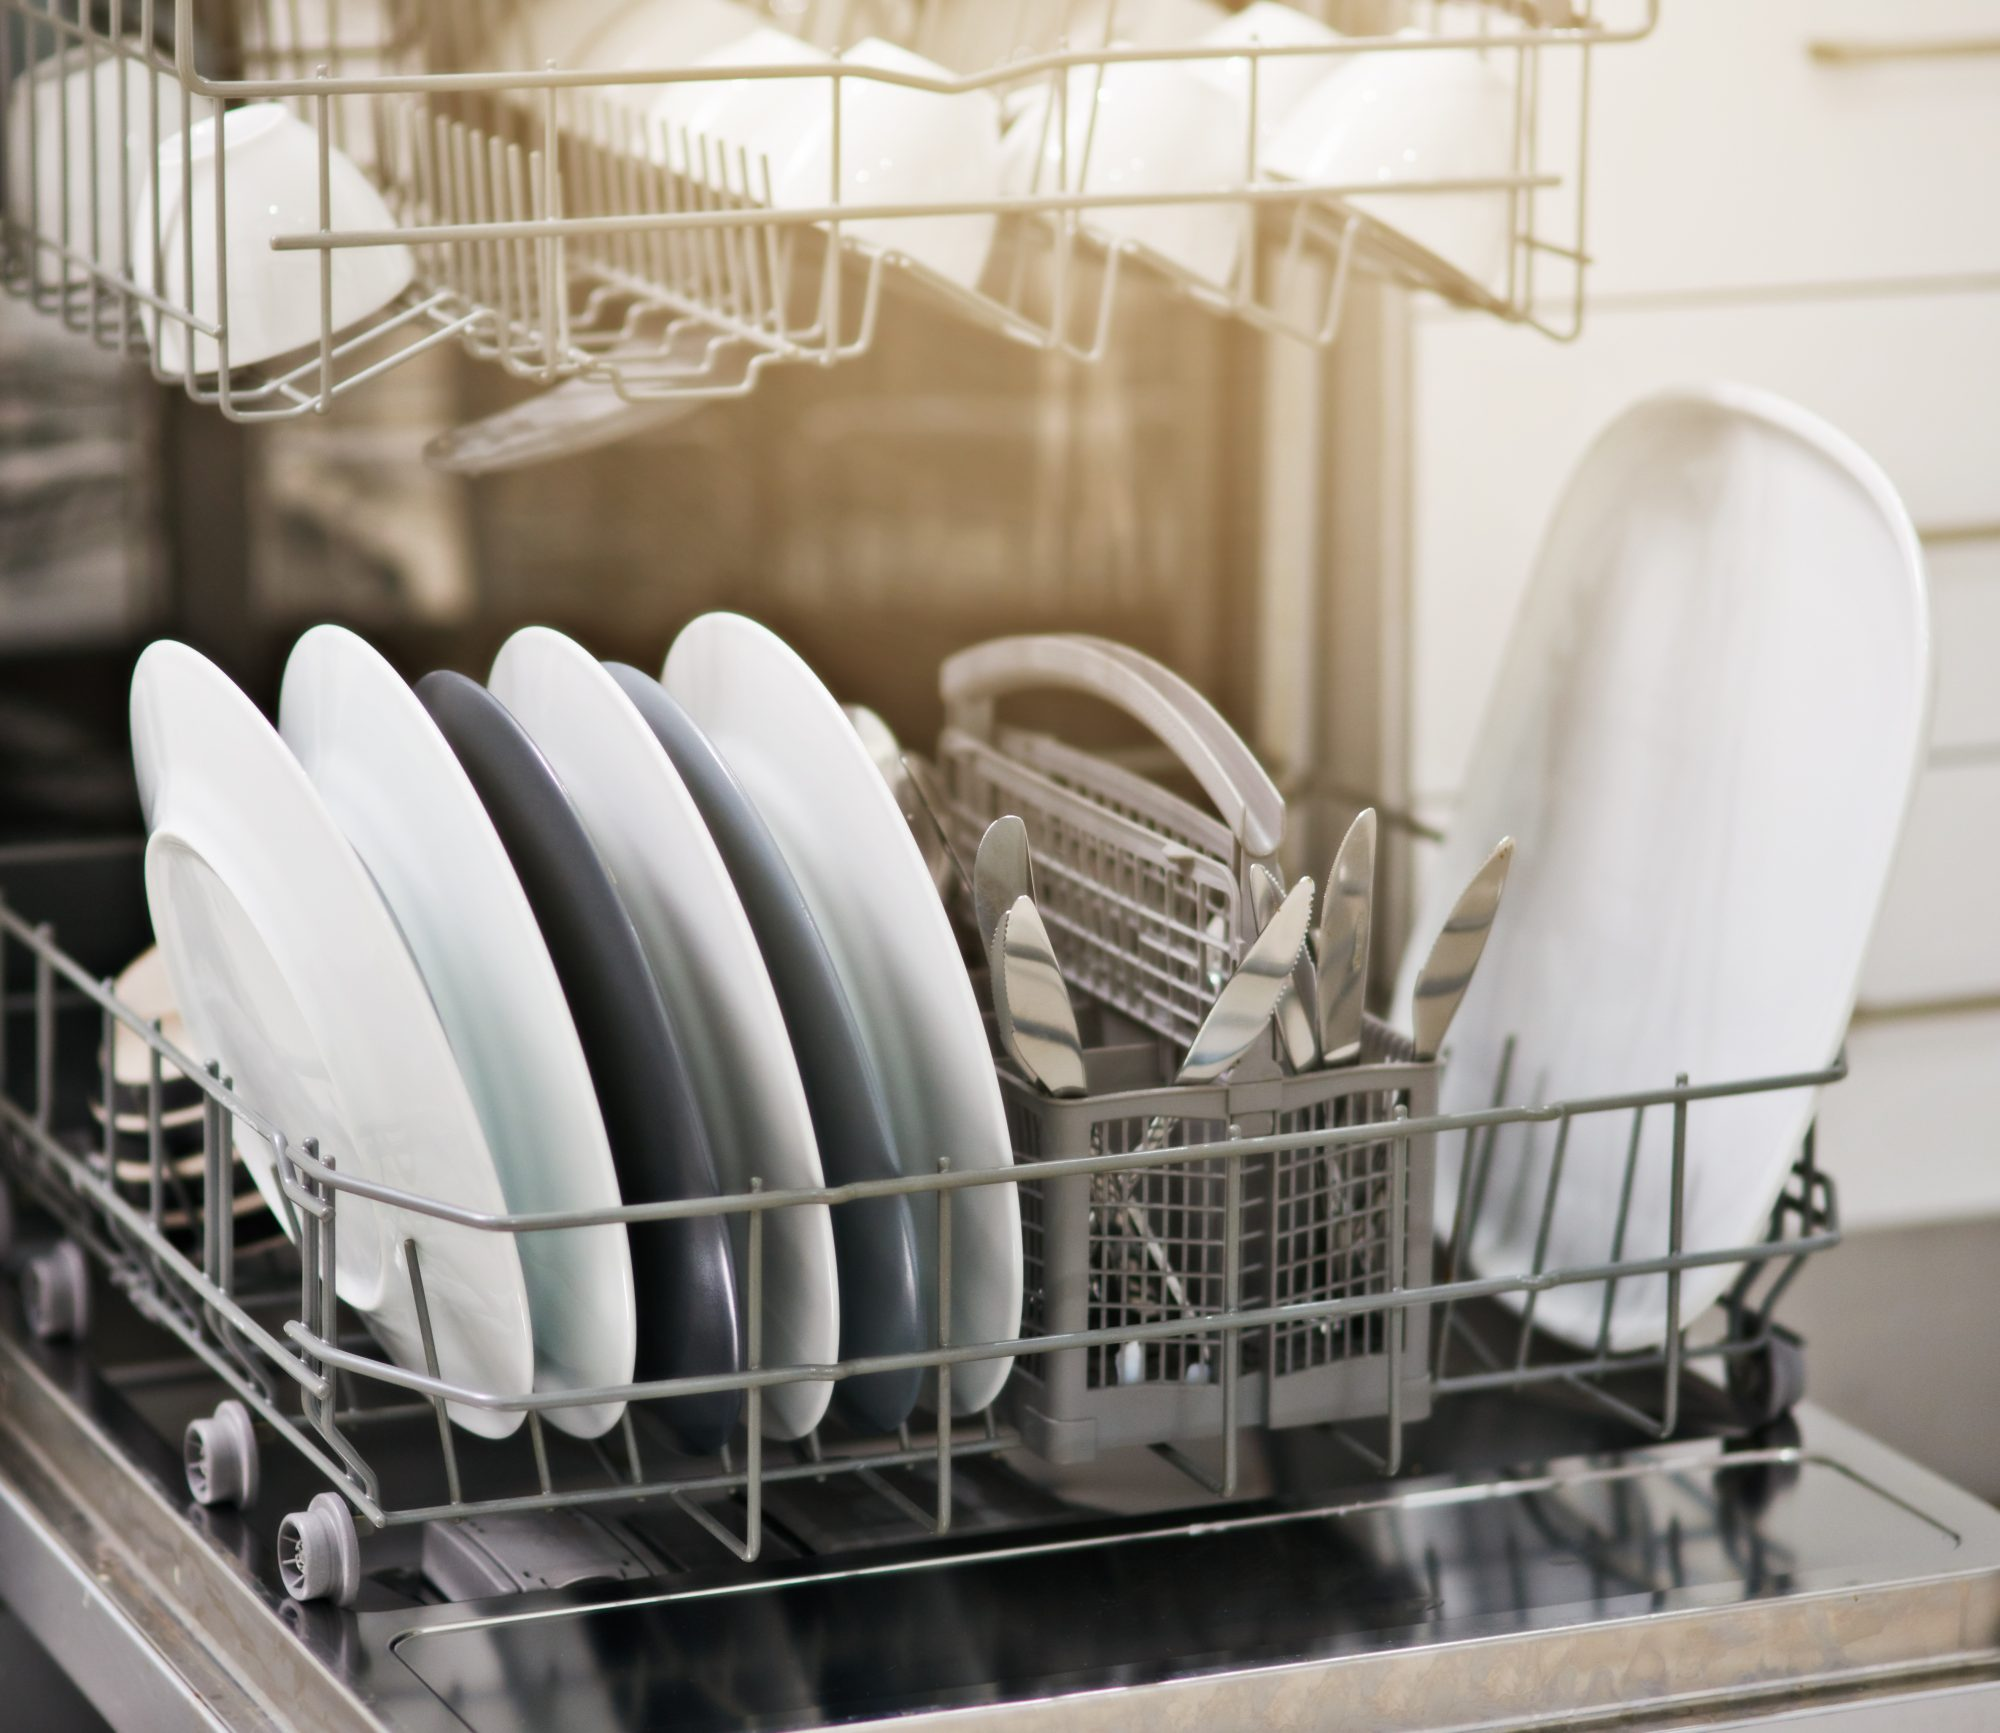 Dishwasher with Clean Dishes